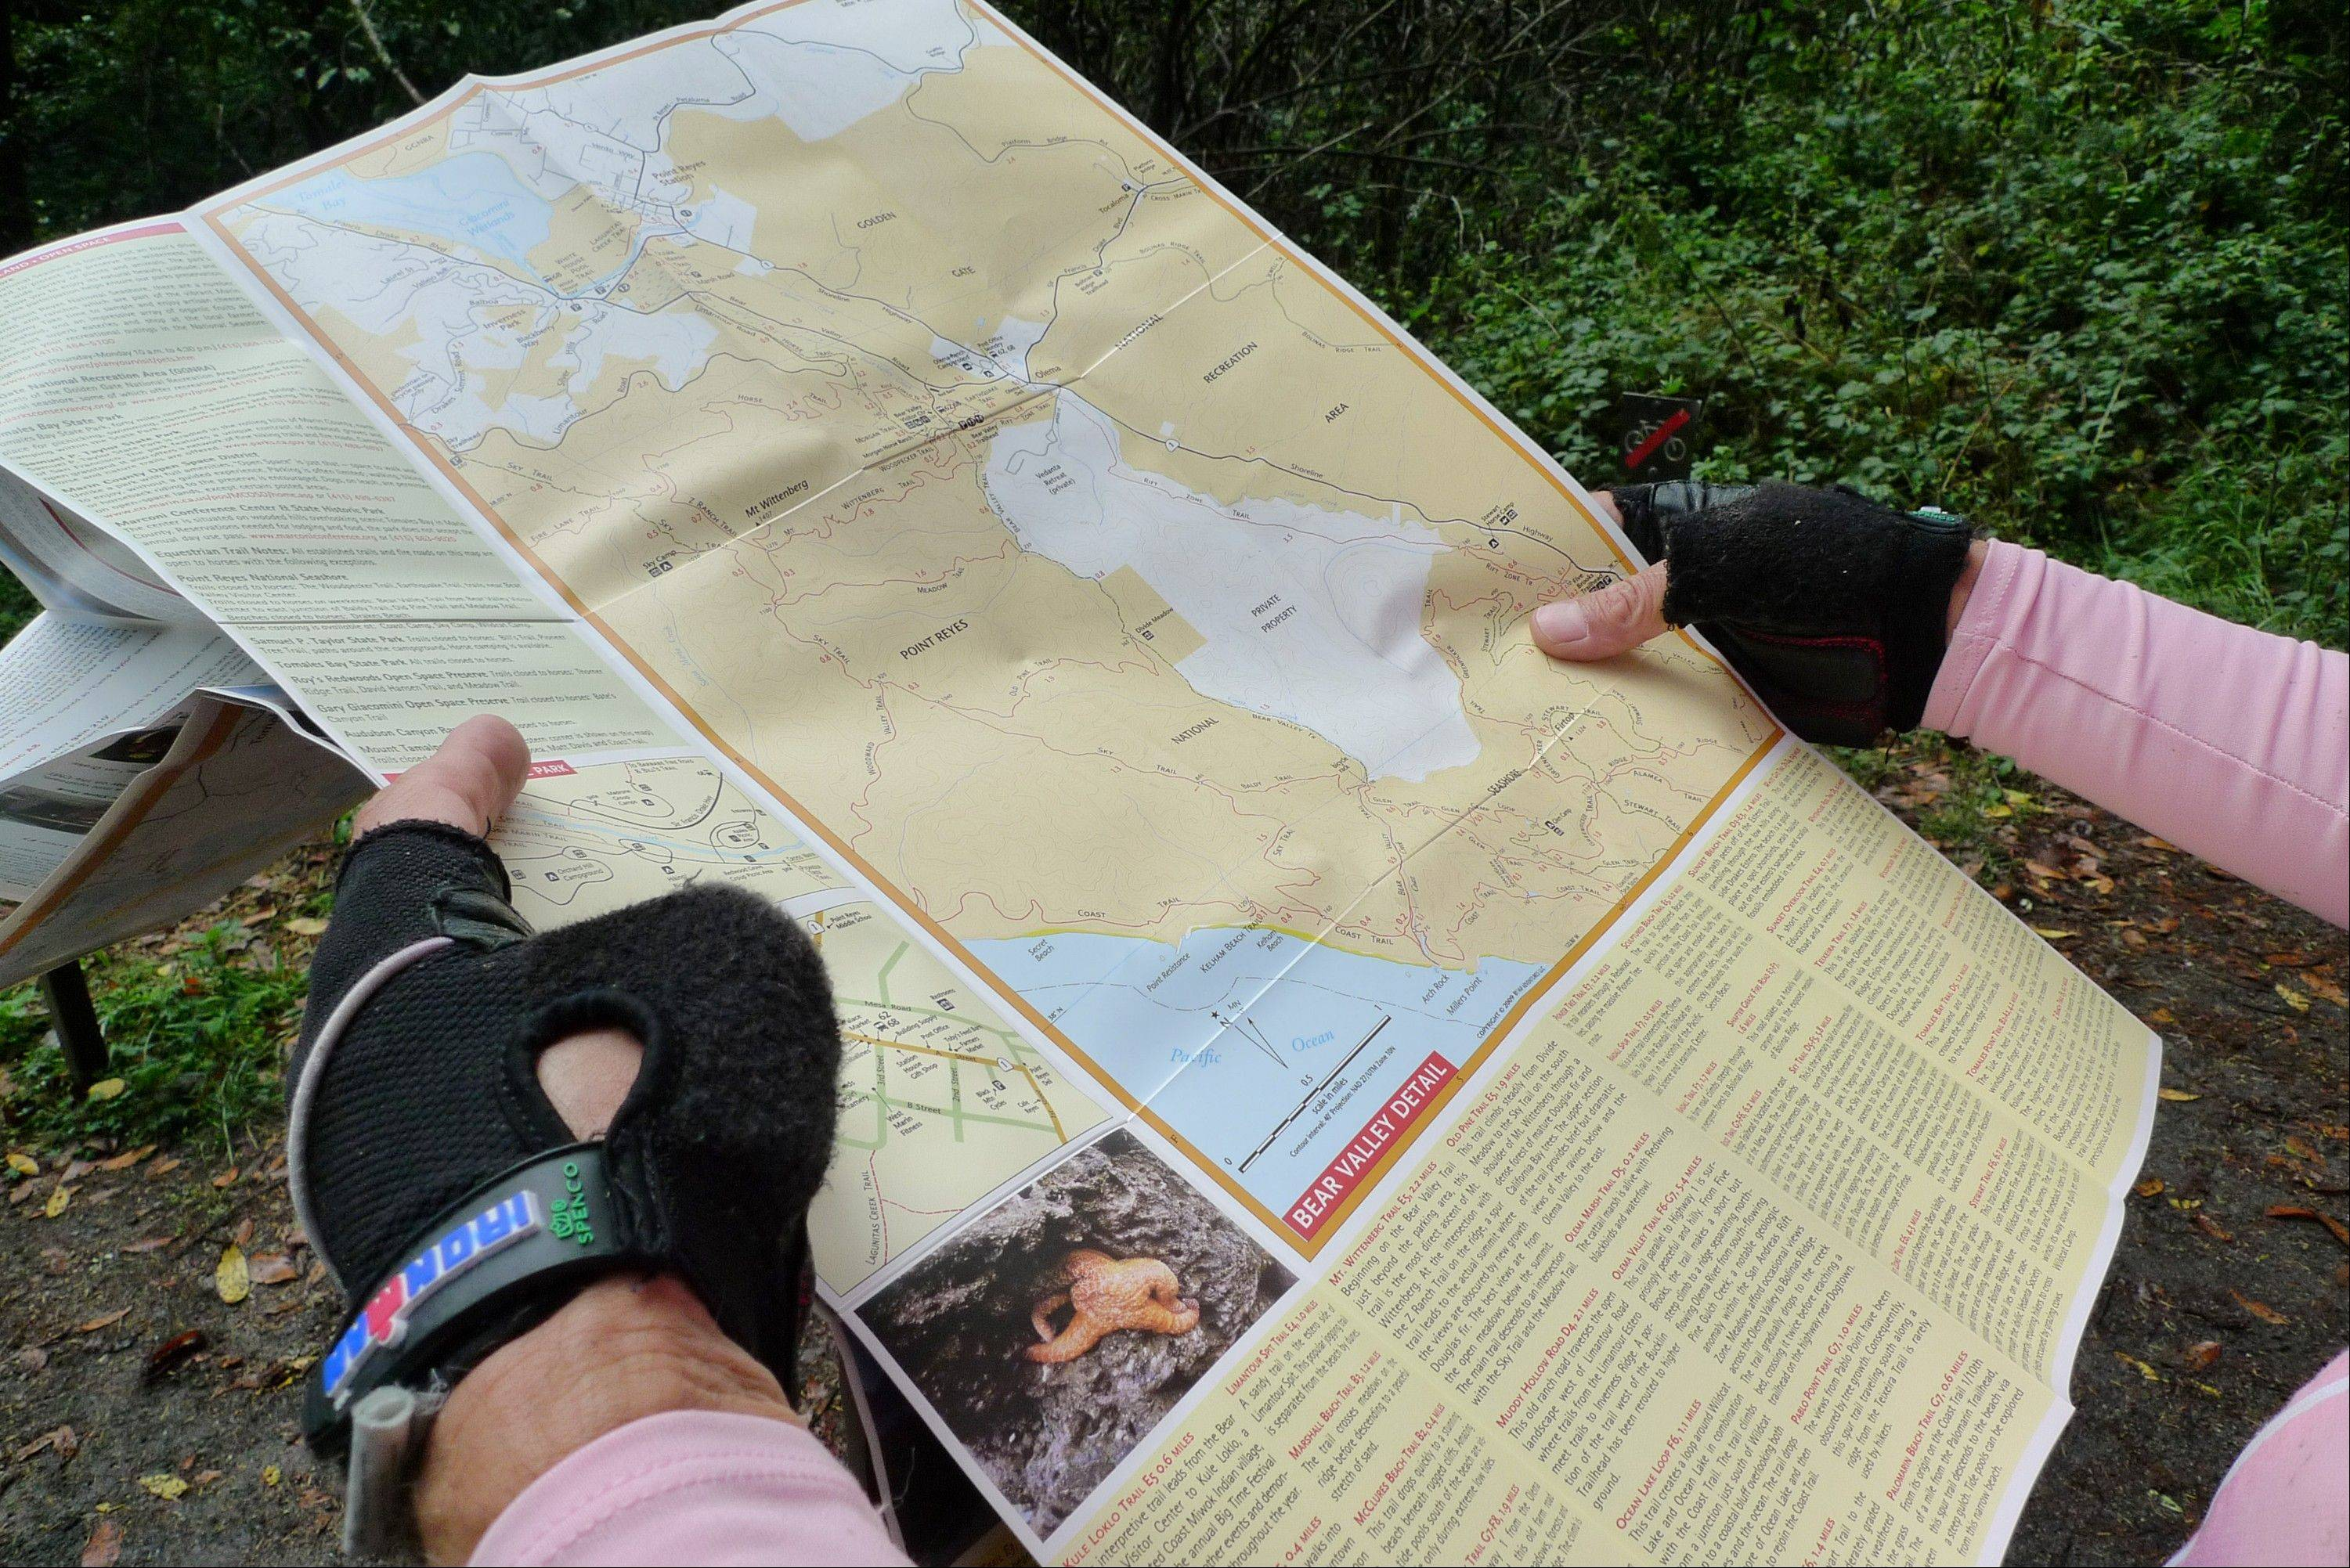 Timothy McCarthy, of Berkeley, Calif., consults a trail map at Point Reyes National Seashore in Marin County, Calif. This part of the tour included a hiking and mountain bike jaunt along some of the park's many trails.